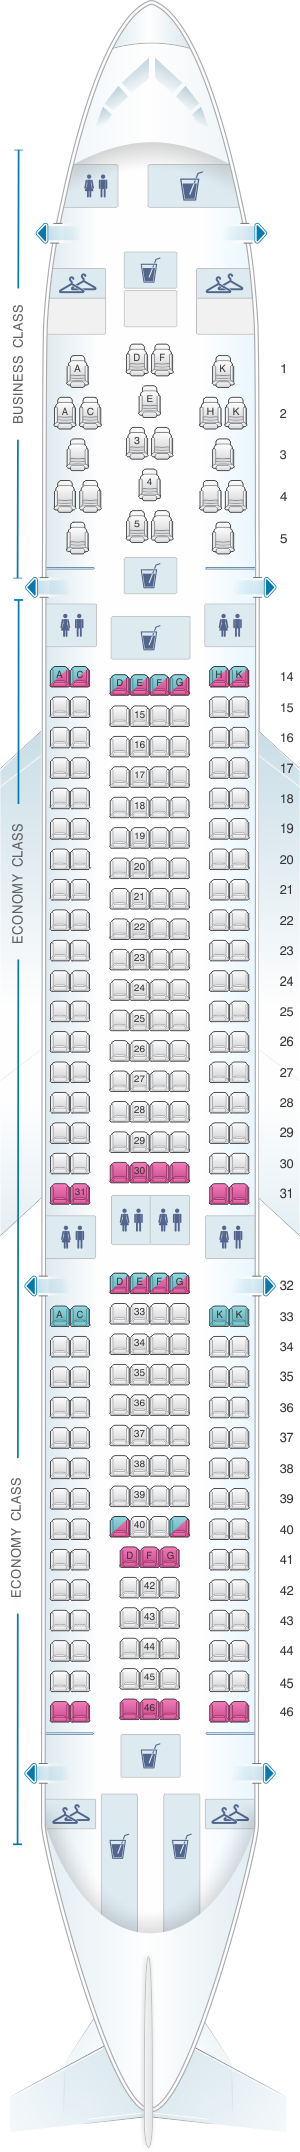 Seat map for Brussels Airlines Airbus A330 200